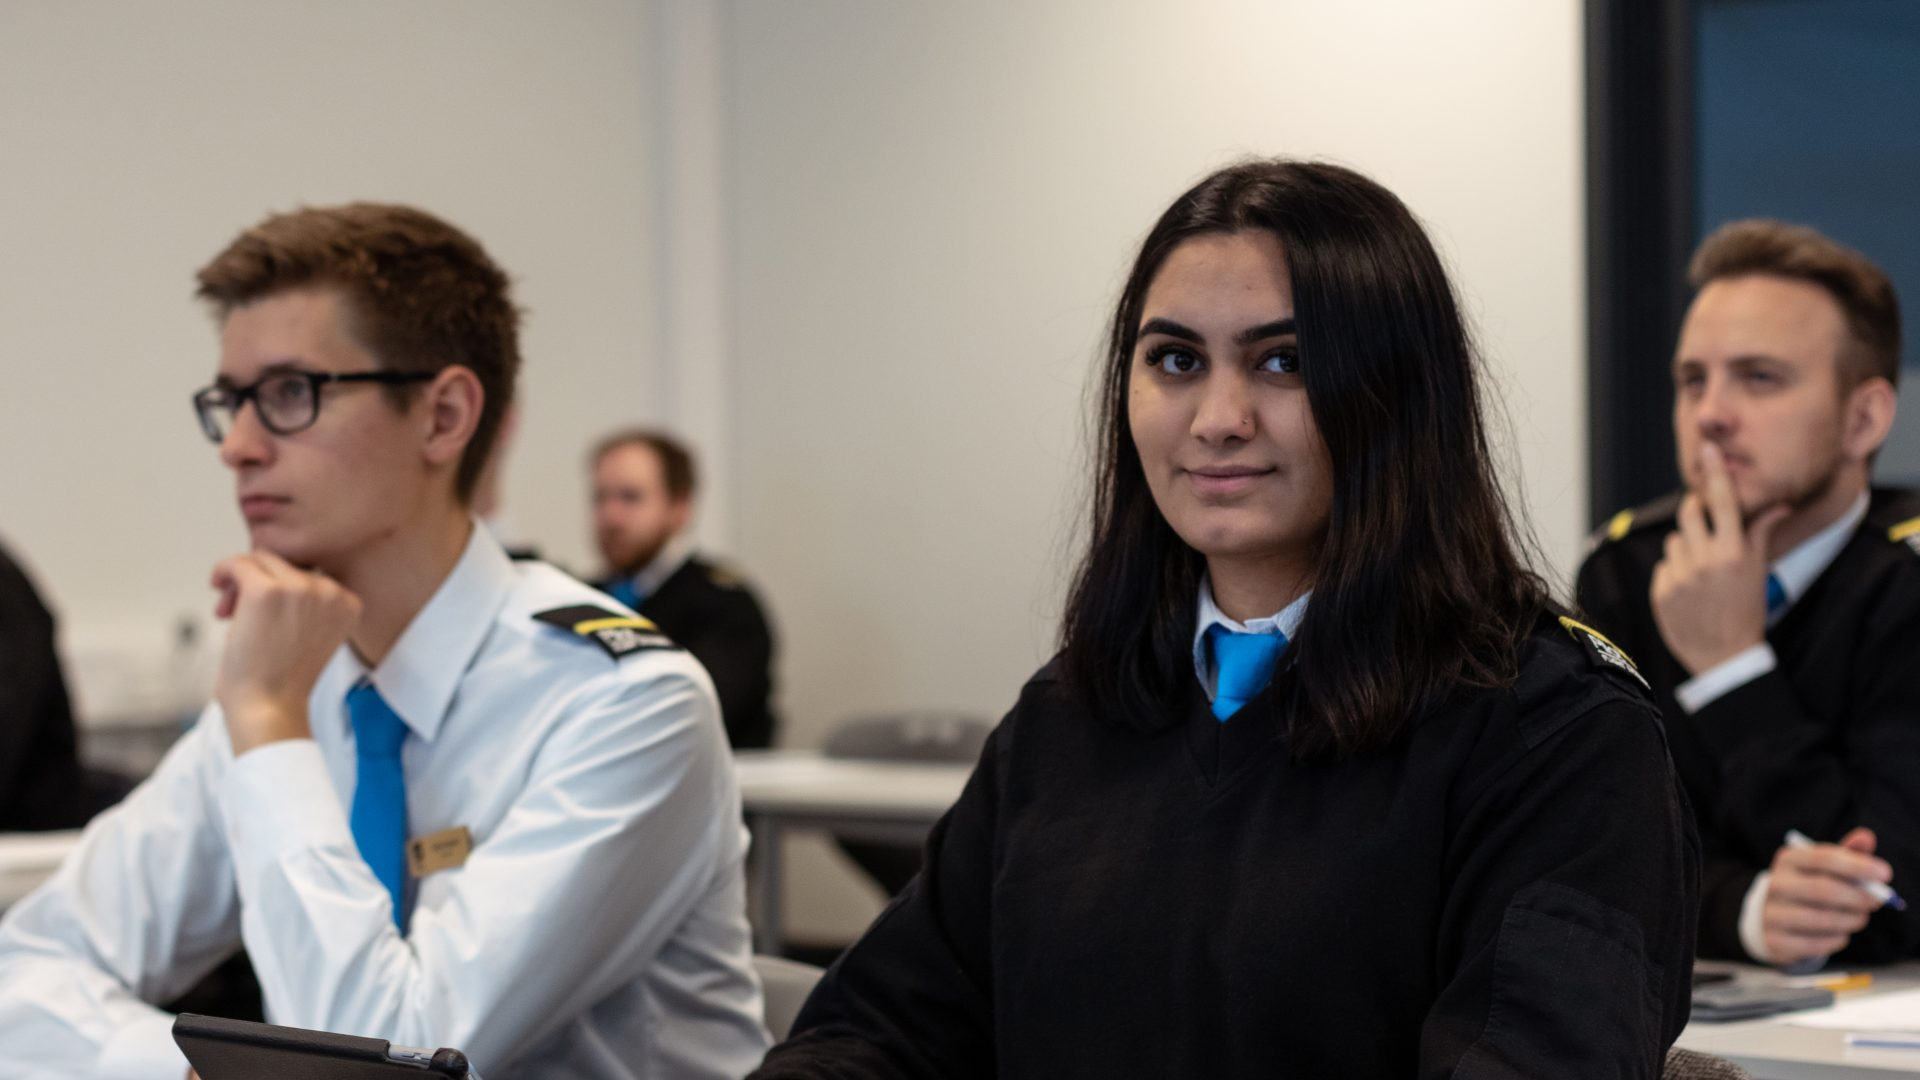 Student pilot in class room. Photo.